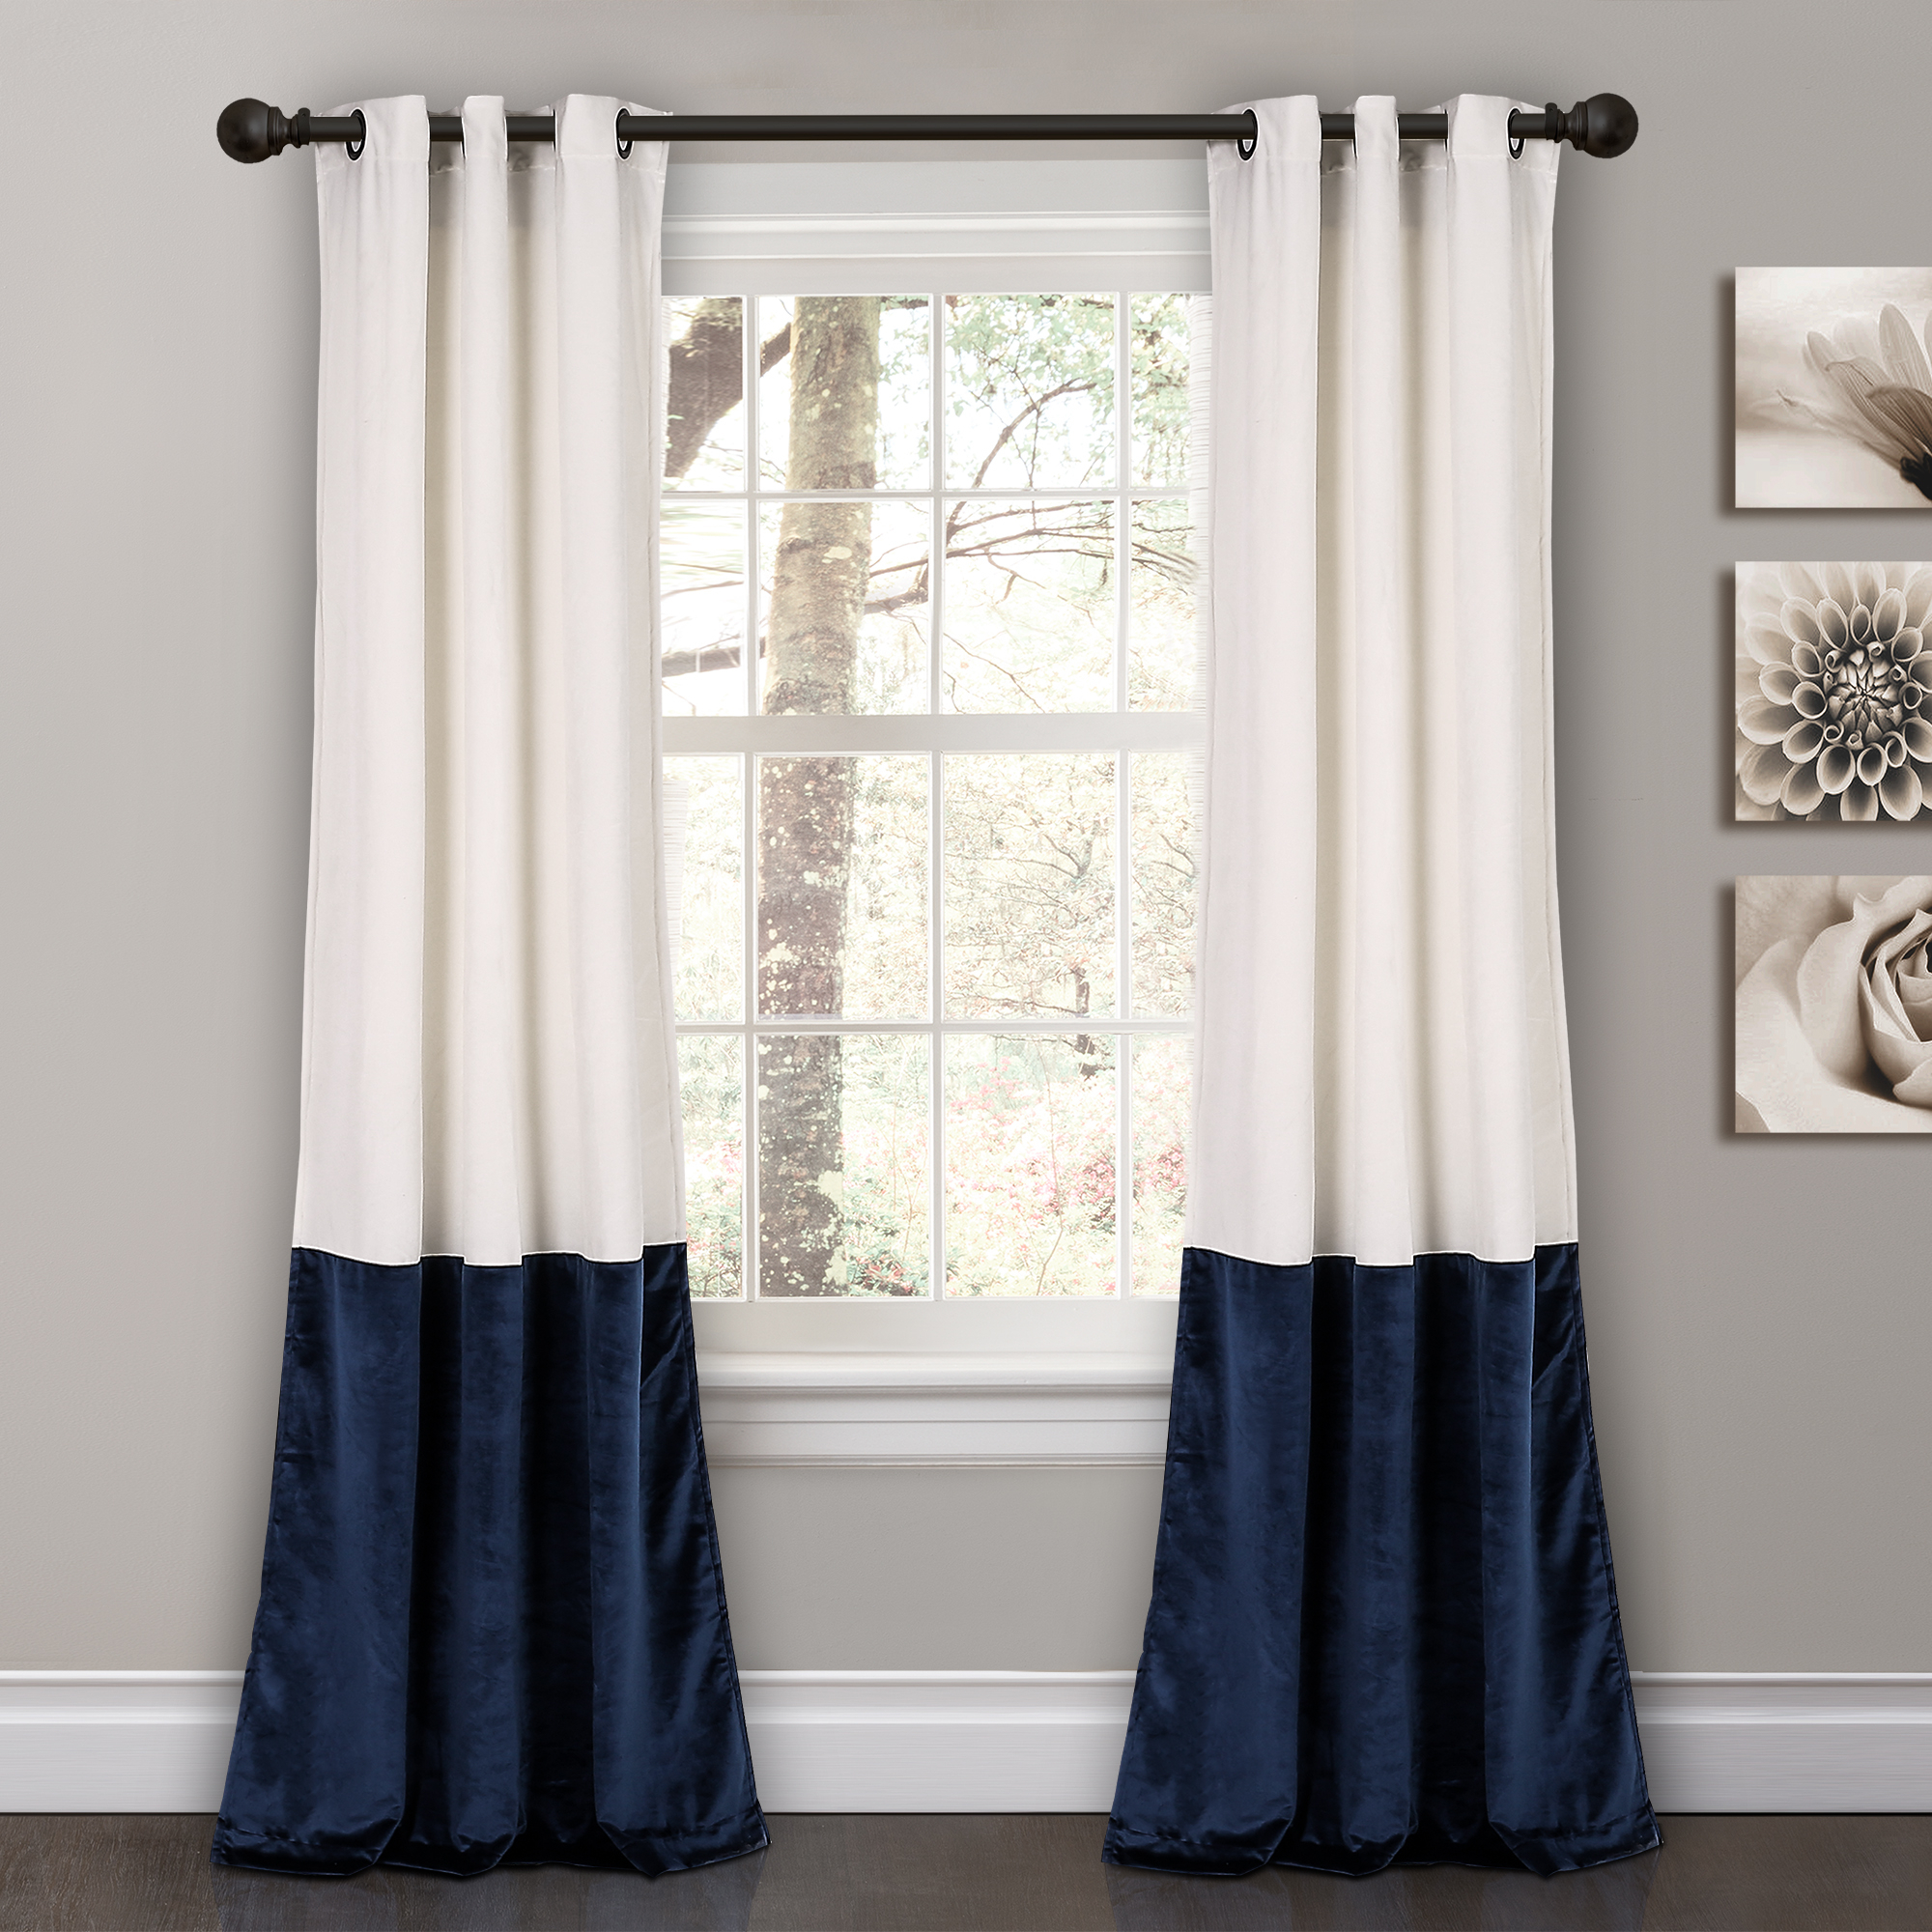 "Details About Prima Velvet Color Block Room Darkening Window Curtain Panel Pair, 84"" X 38"" Within Room Darkening Window Curtain Panel Pairs (View 11 of 20)"